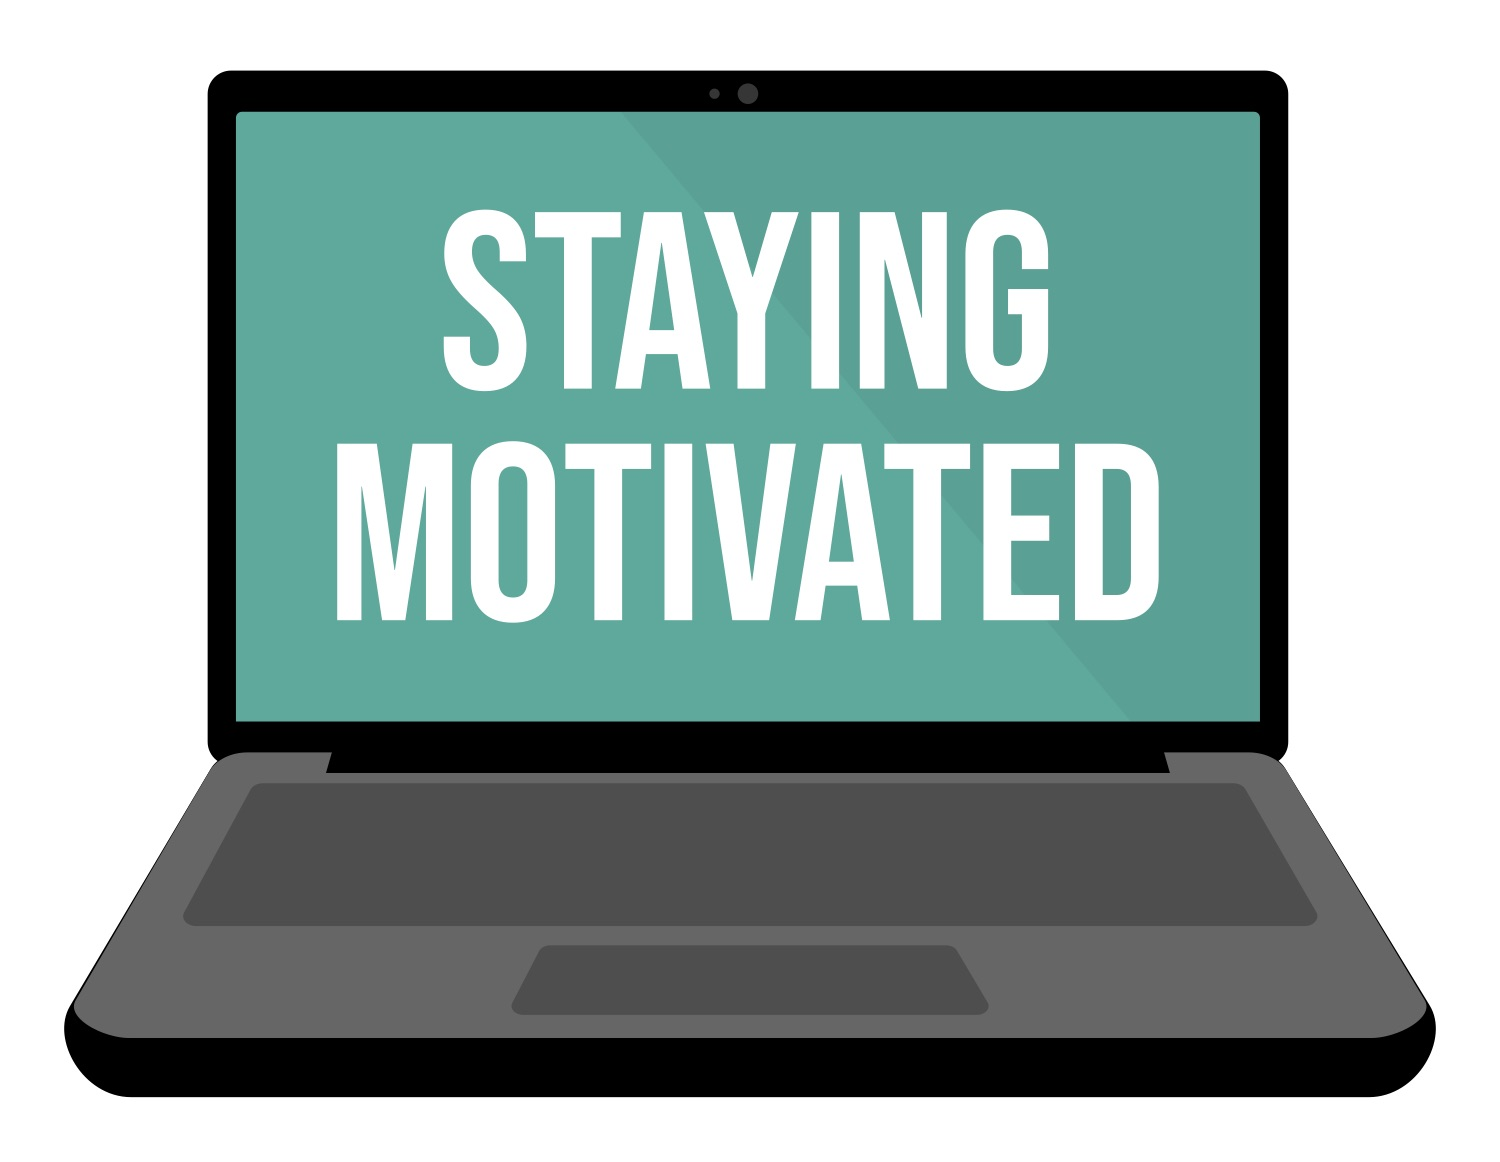 Staying motivated to finish strong